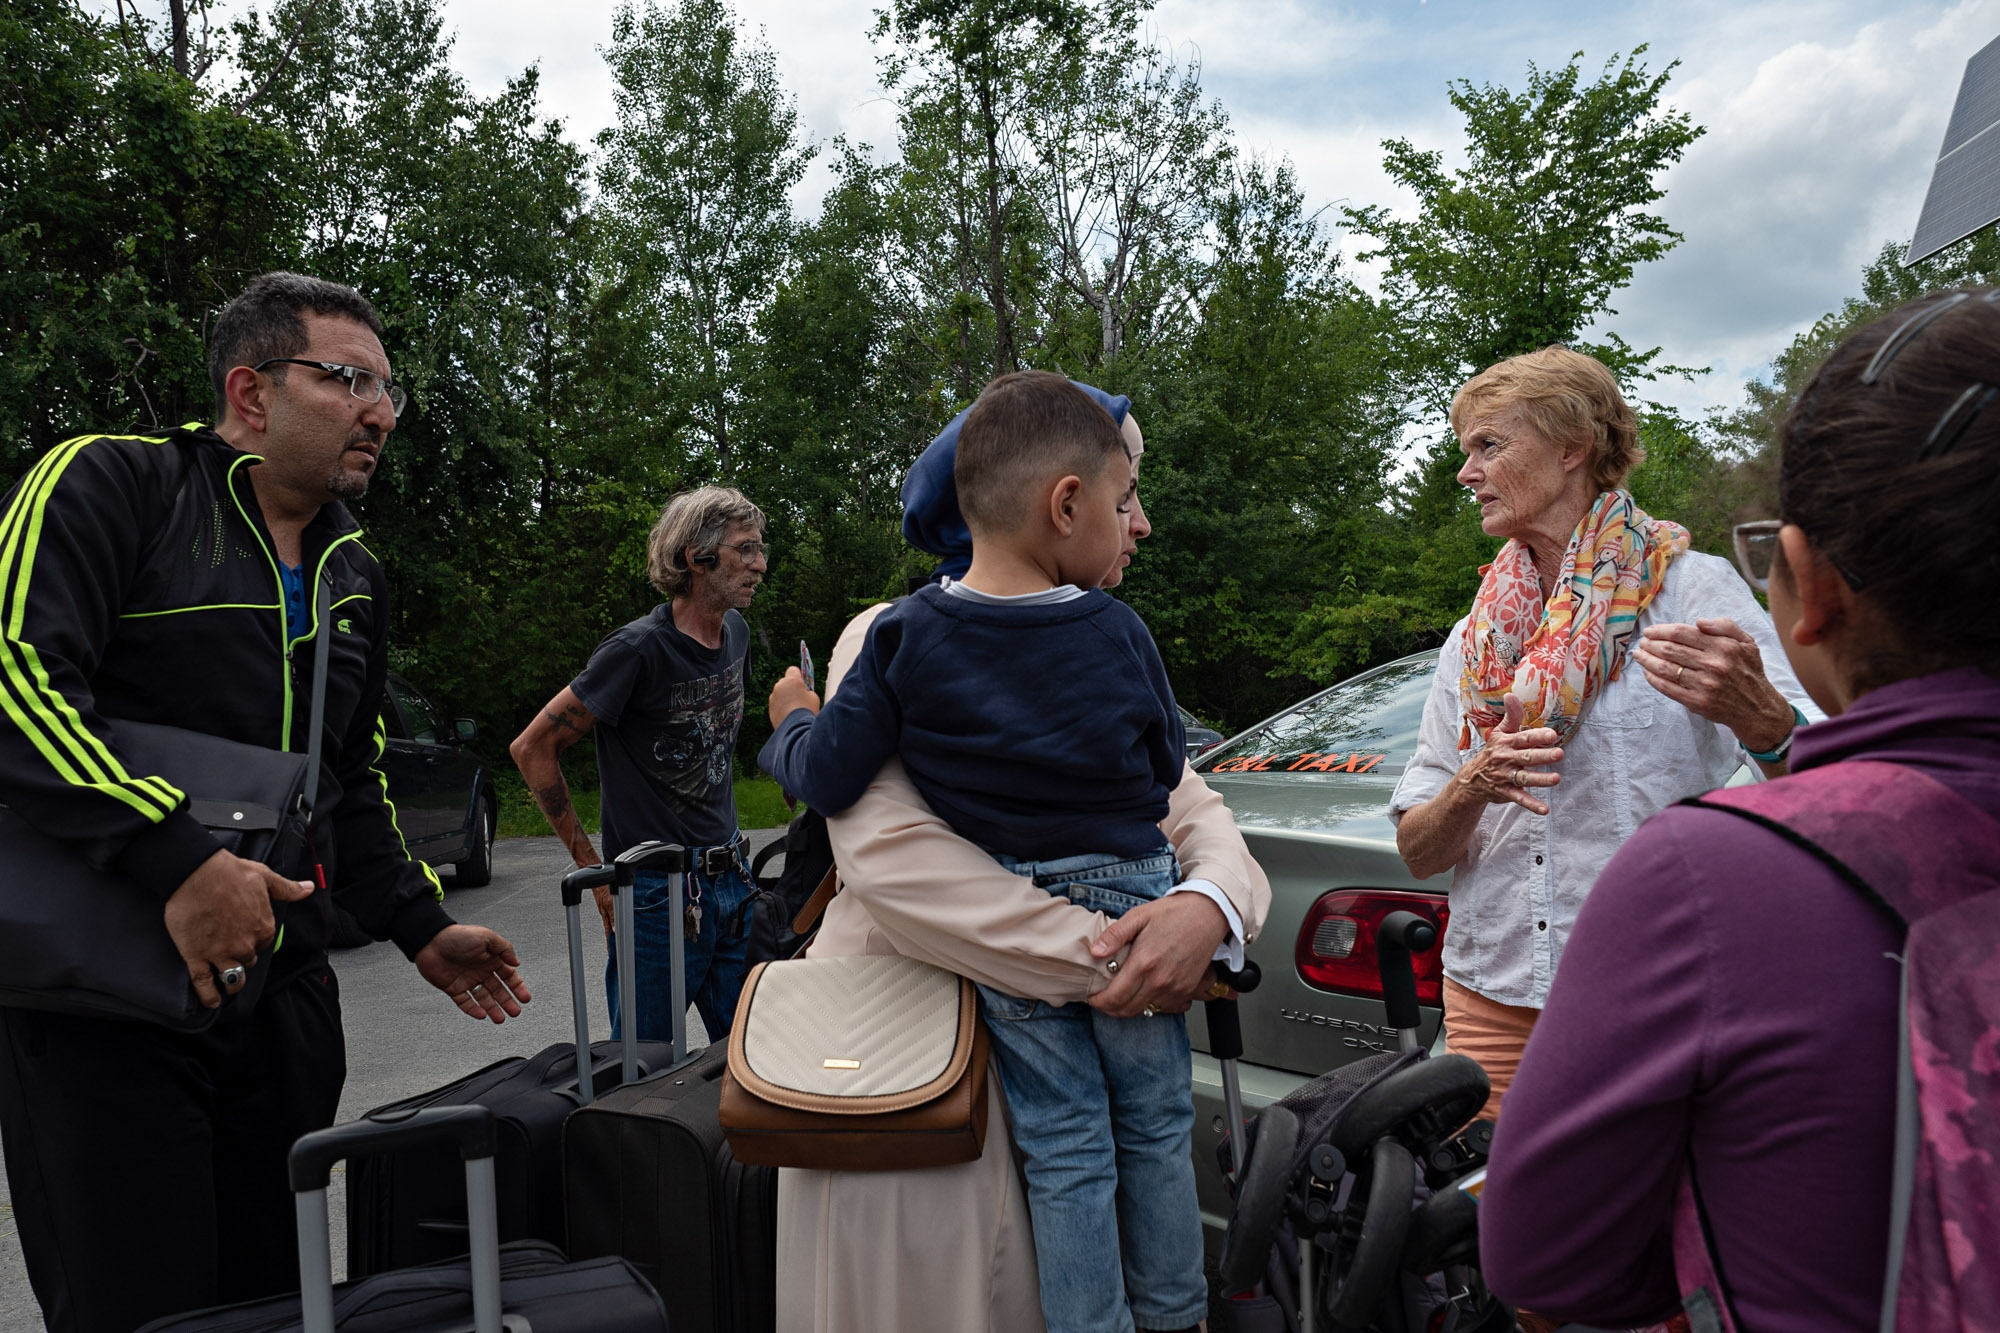 Janet McFetridge, 66, explains to a family of Palestinian asylum seekers what will happen when they try to cross the border. McFetridge waits at this waypoint year-round, offering snacks, clothes and toys for children on the journey to Canada.